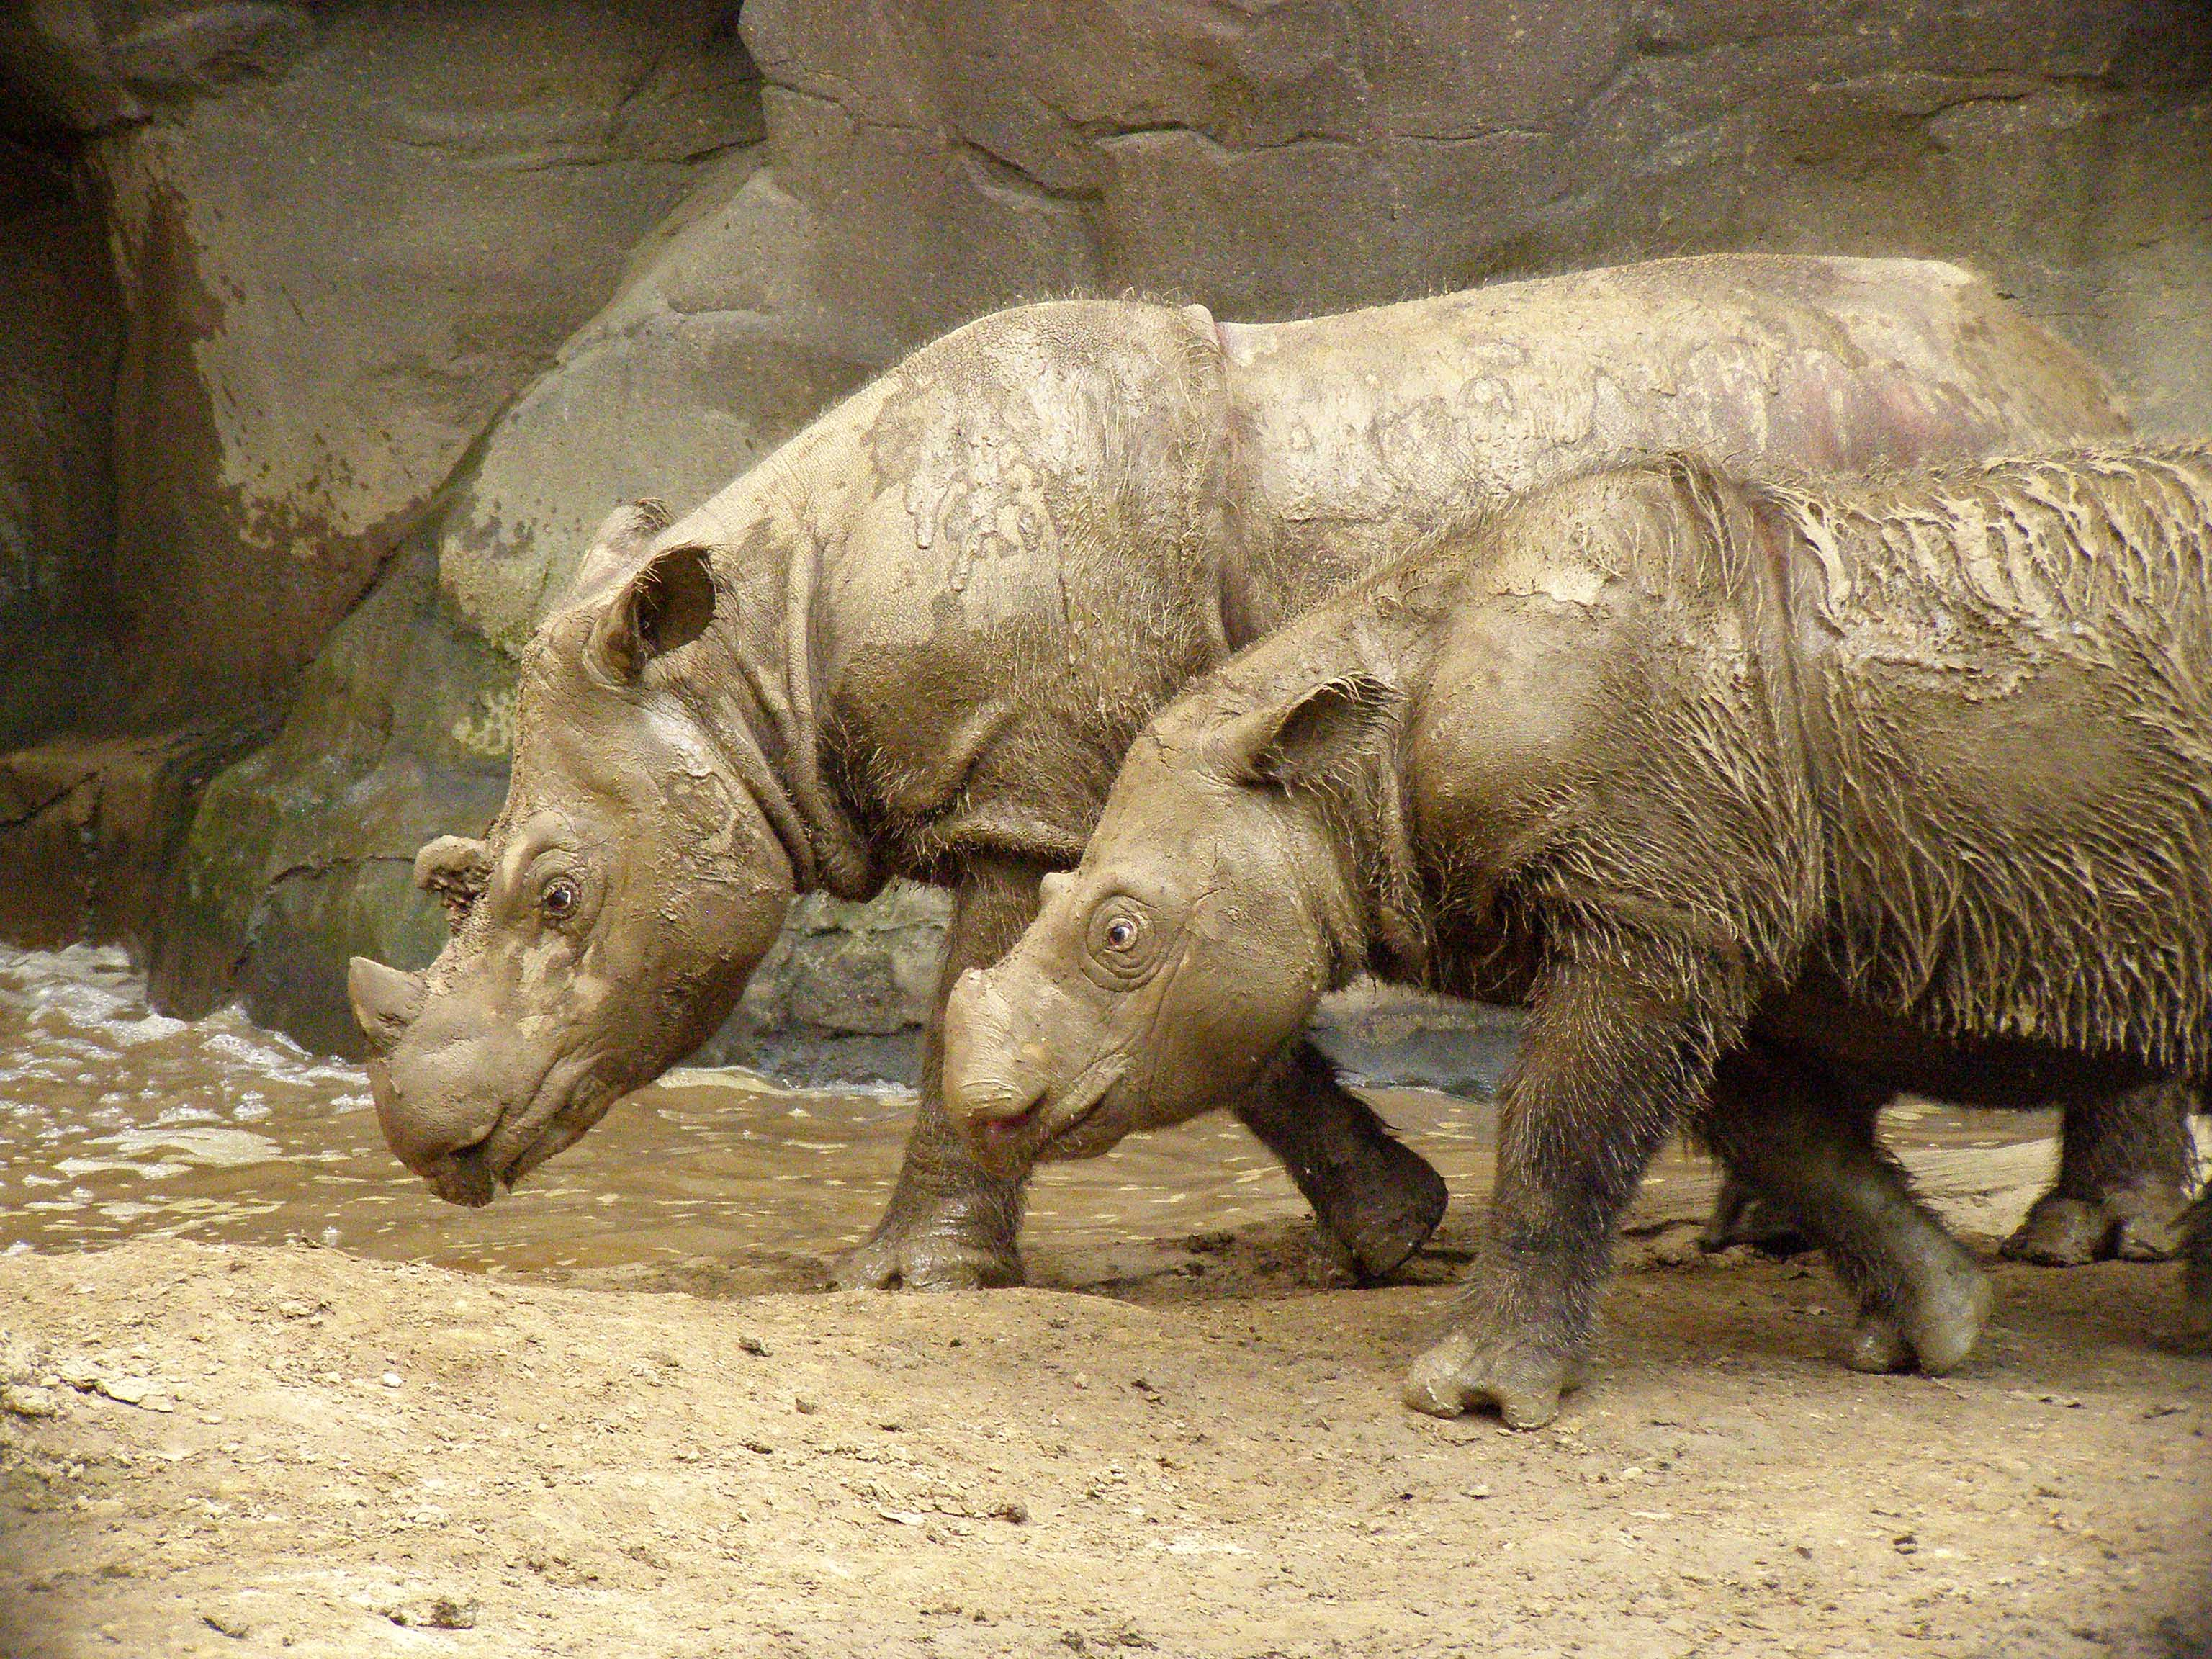 https://upload.wikimedia.org/wikipedia/commons/3/33/Sumatran_Rhino_2.jpg